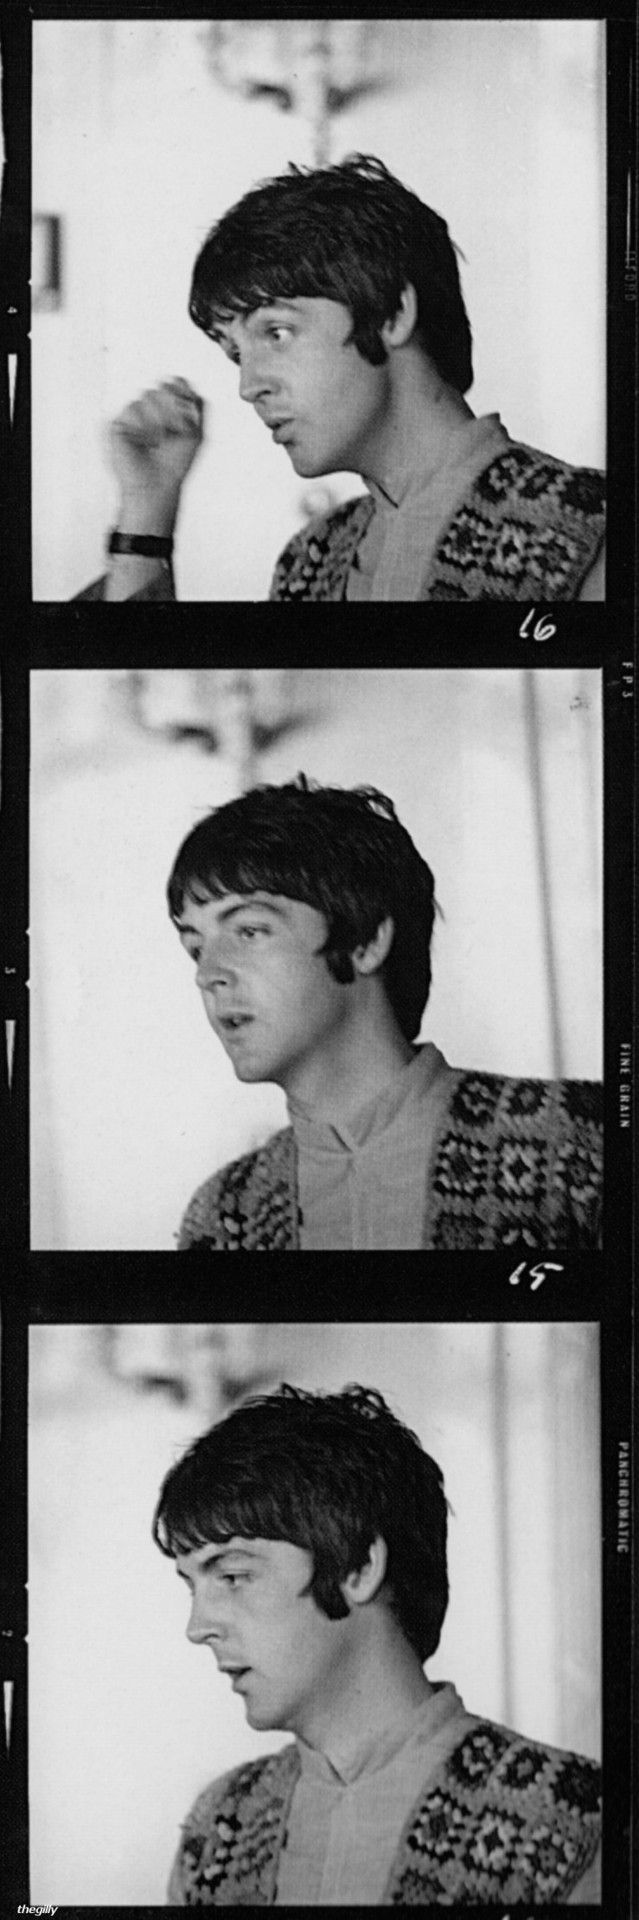 """Paul at the Atlantic Hotel in Newquay during the filming of Magical Mystery Tour, 13 September 1967.Scan from """"The Making of the Beatles' Magical Mystery Tour"""" by Tony Bramwell."""